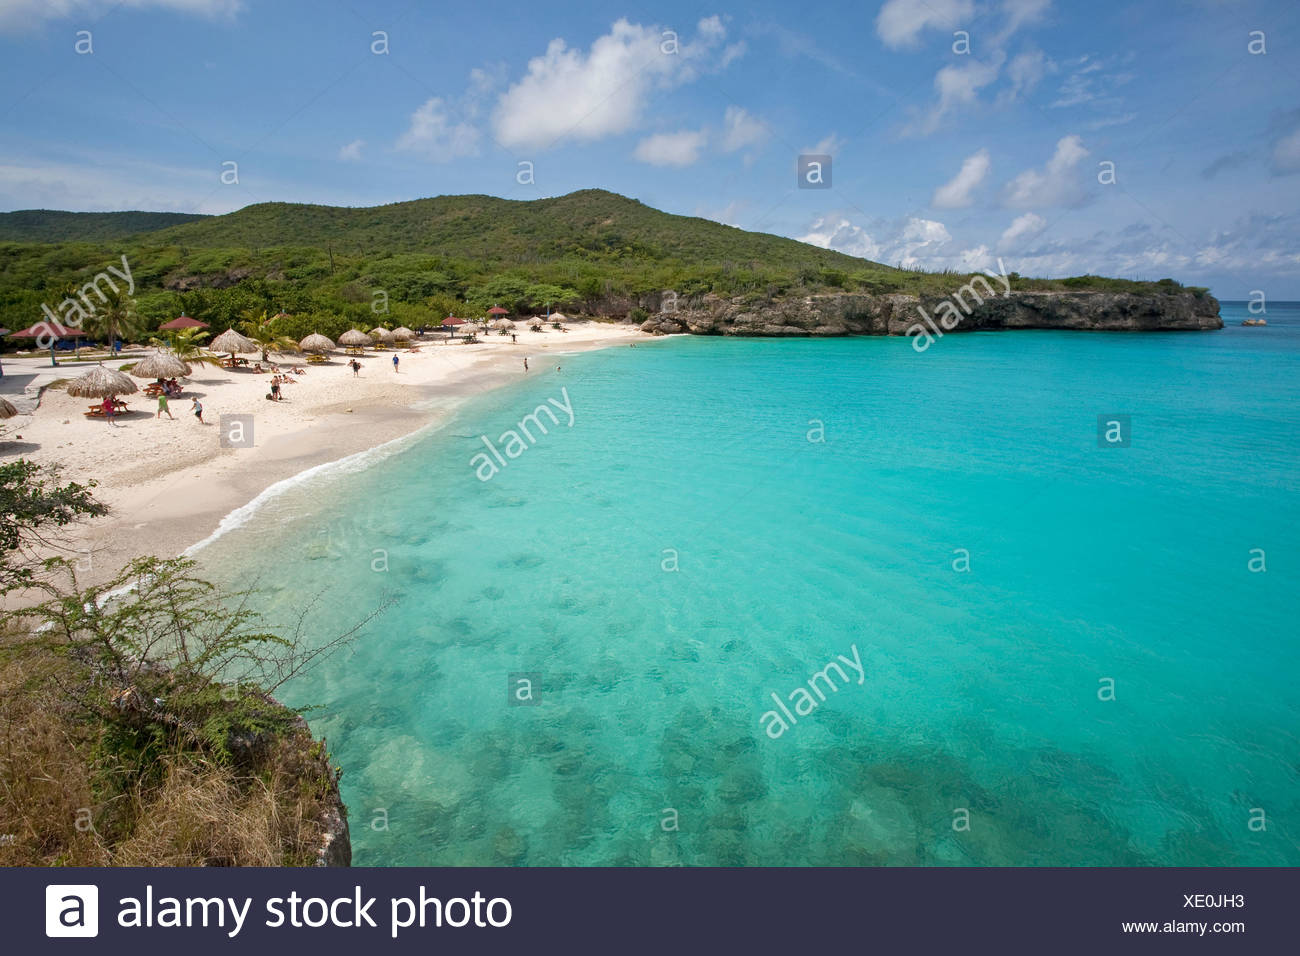 Grote Knip beach, also called Playa Abou beach, Curacao, former Netherlands Antilles, Caribbean Stock Photo